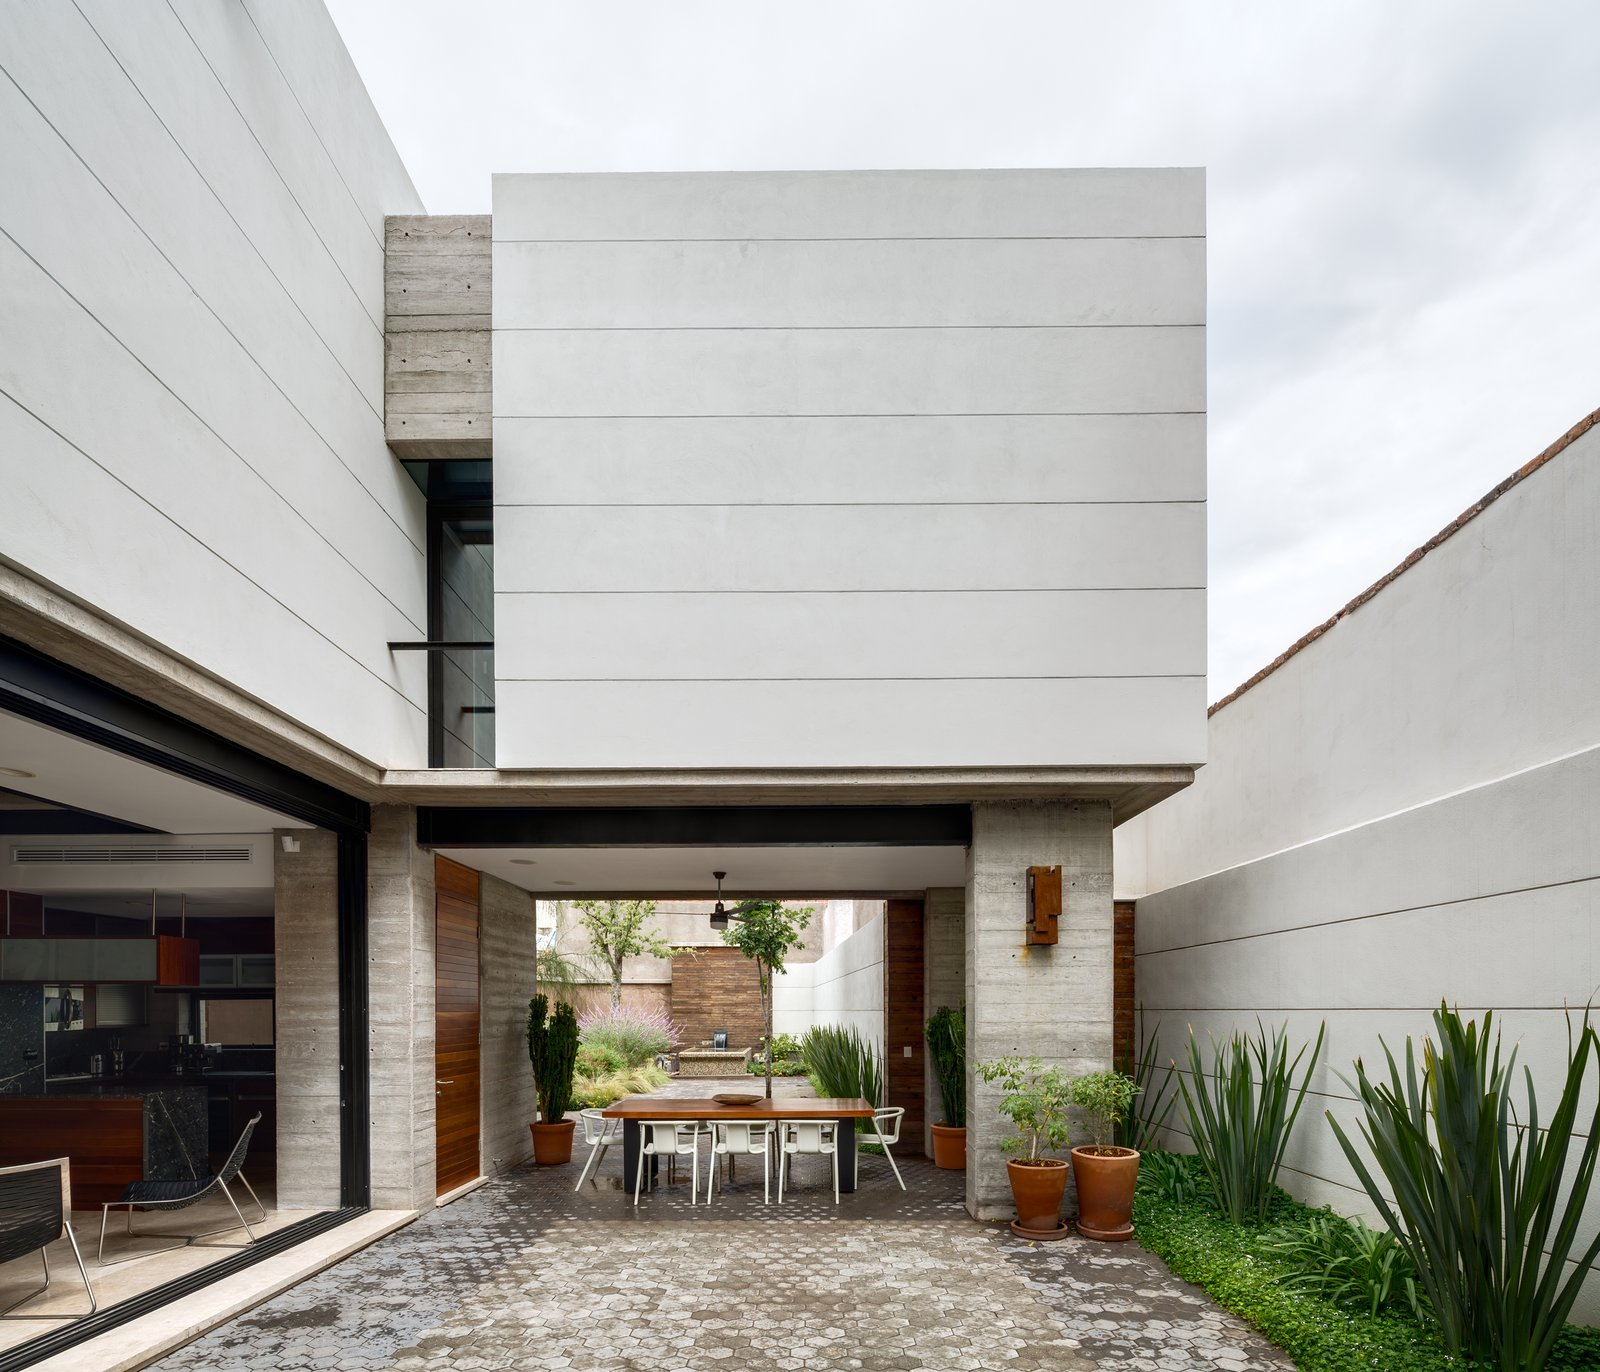 The open and airy courtyard and dining area encourages outdoor living. A custom table made from Andiroba wood and Magis White Air armchairs complete the space.